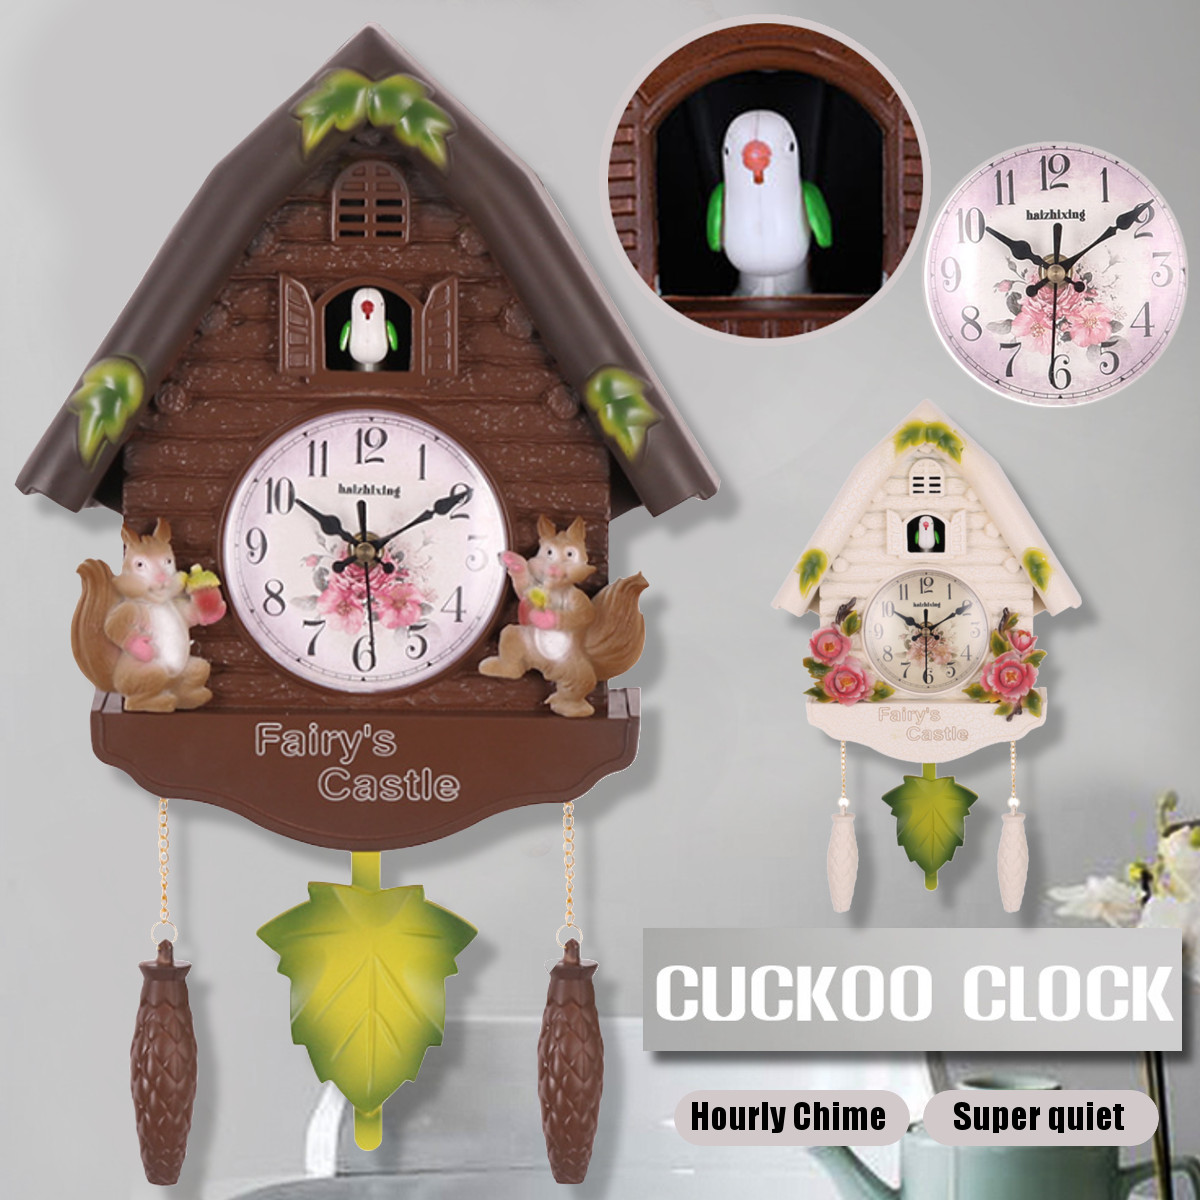 Watch Wall-Clock Swing-Alarm Art-Decor Handcraft Cuckoo Wooden Antique Home-Room Bird-Time